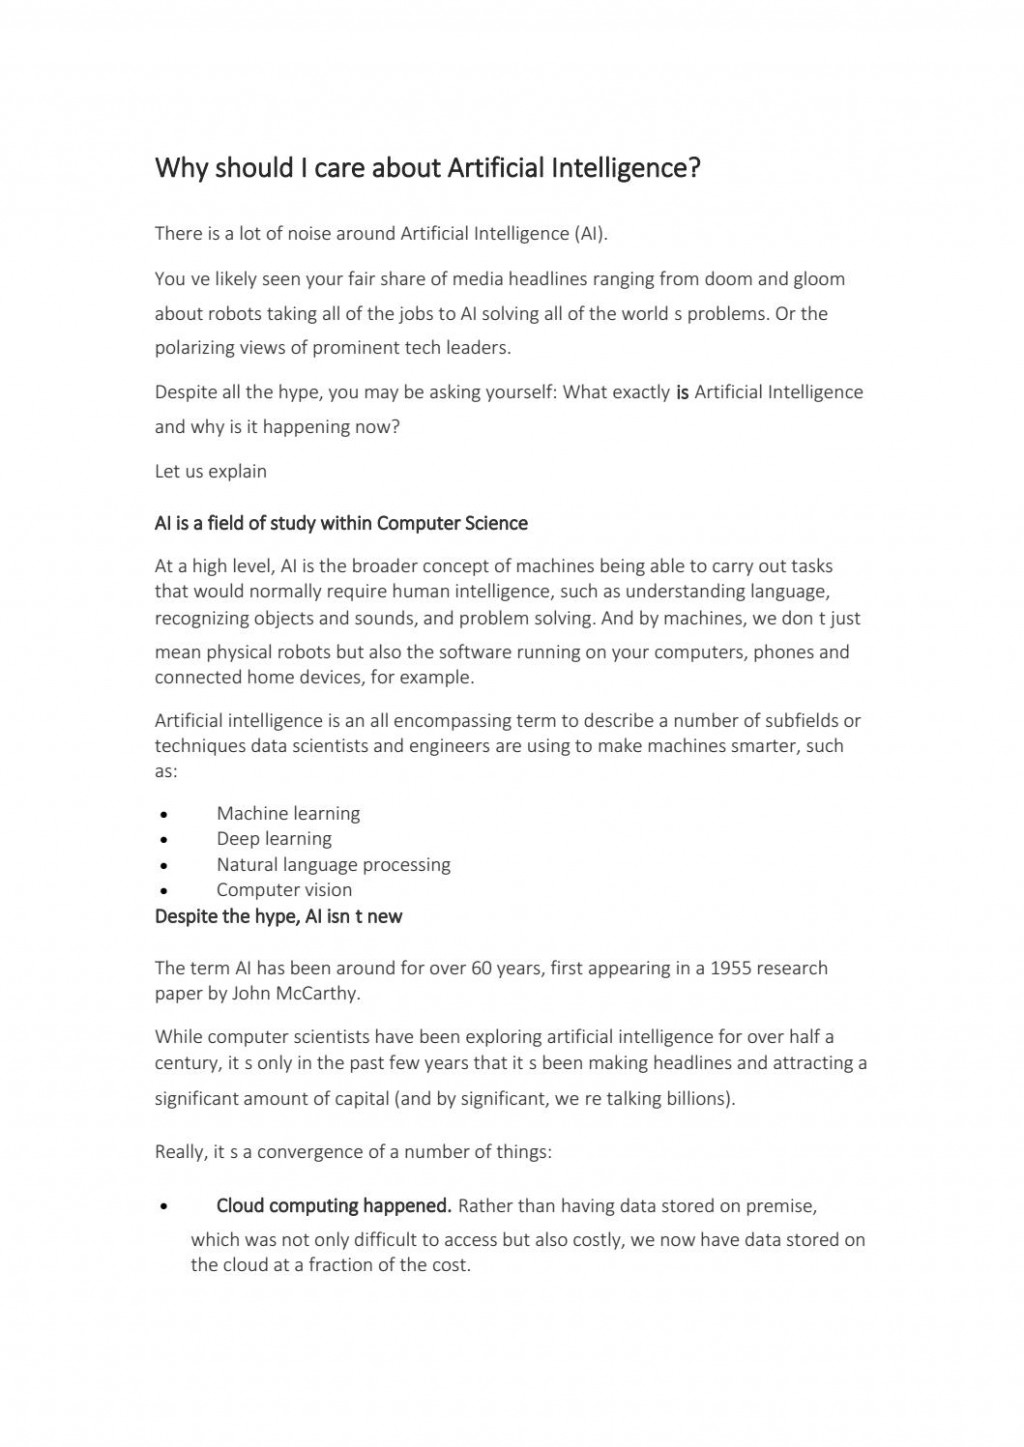 010 Research Paper Artificial Intelligence Papers Page 1 Unique 2017 Ideas Large